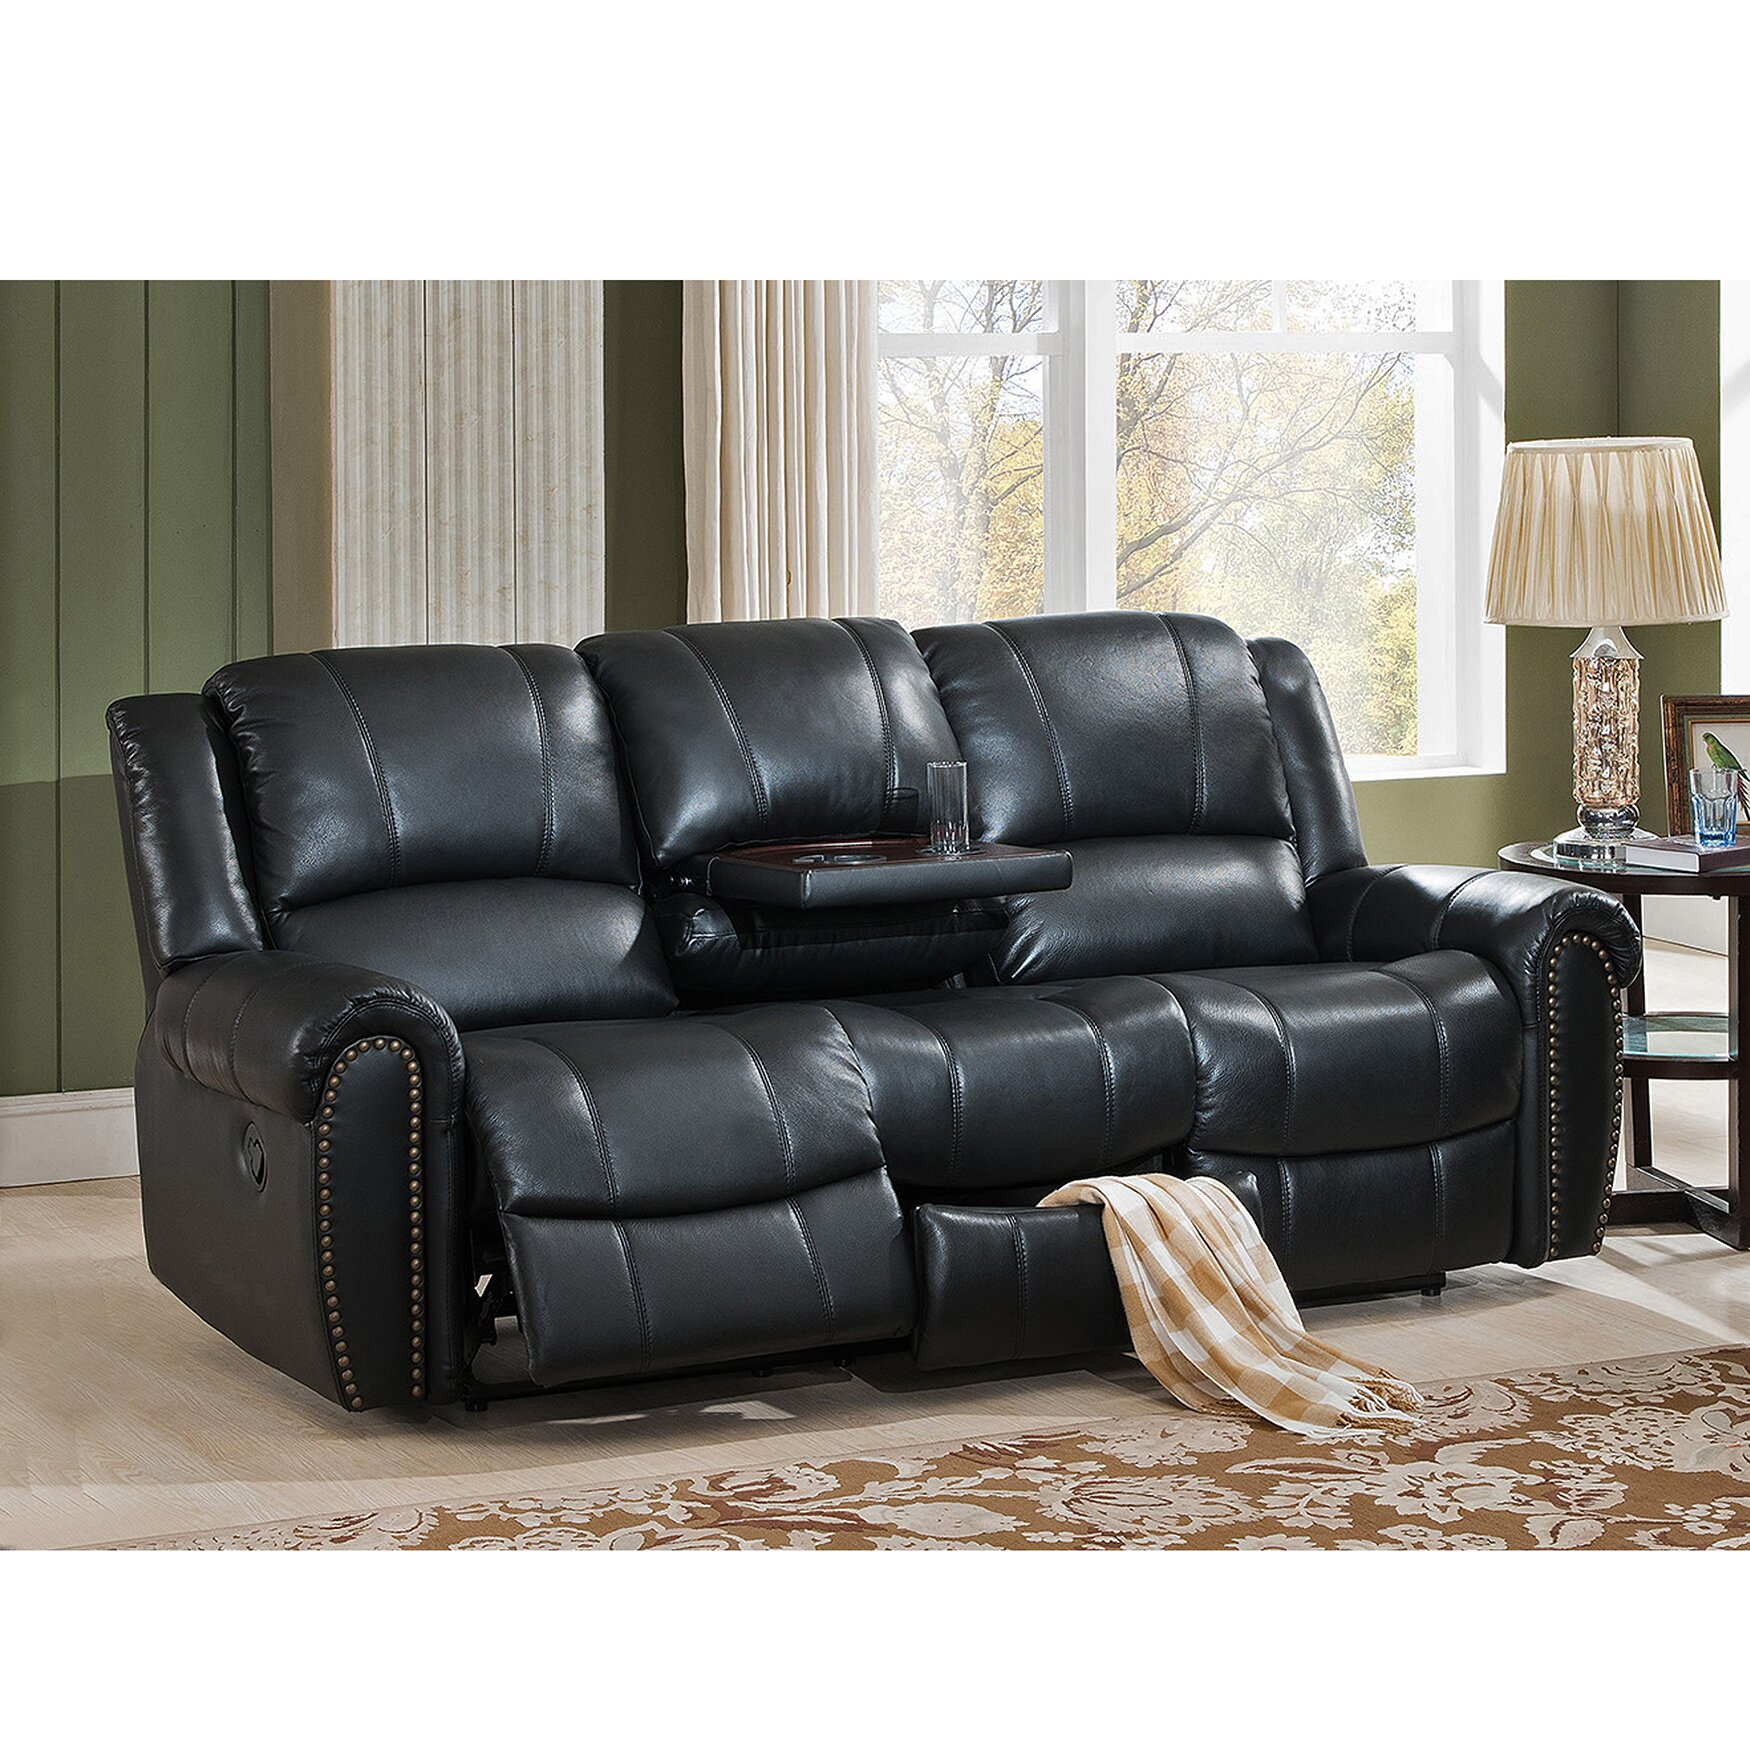 Amax Houston Leather Reclining Sofa Reviews Wayfair